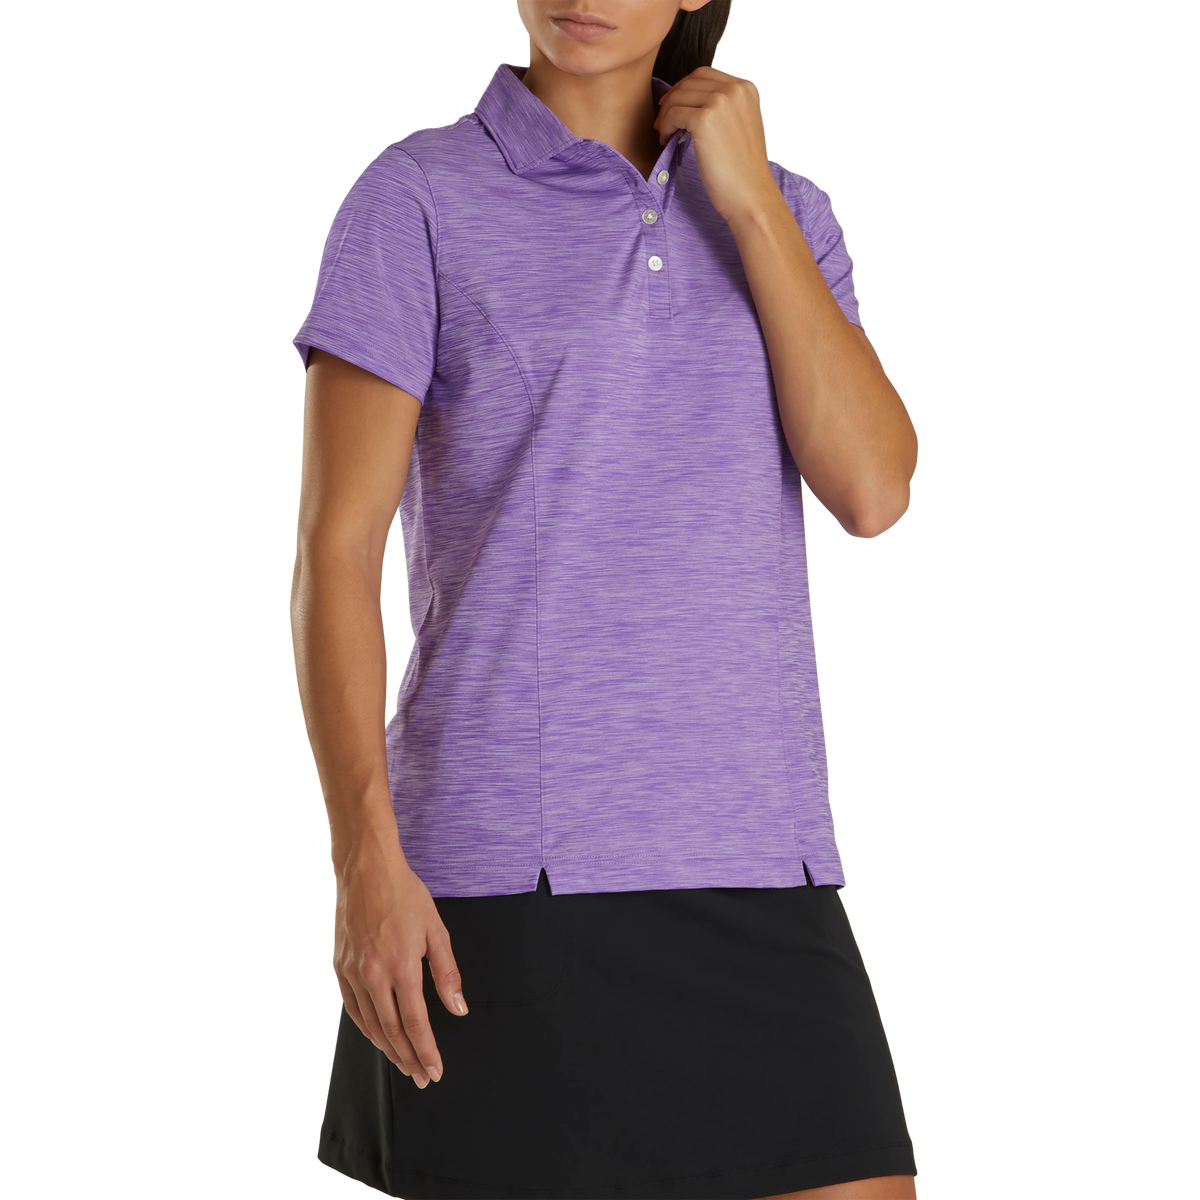 ProDry Interlock Shirt Self Collar Women